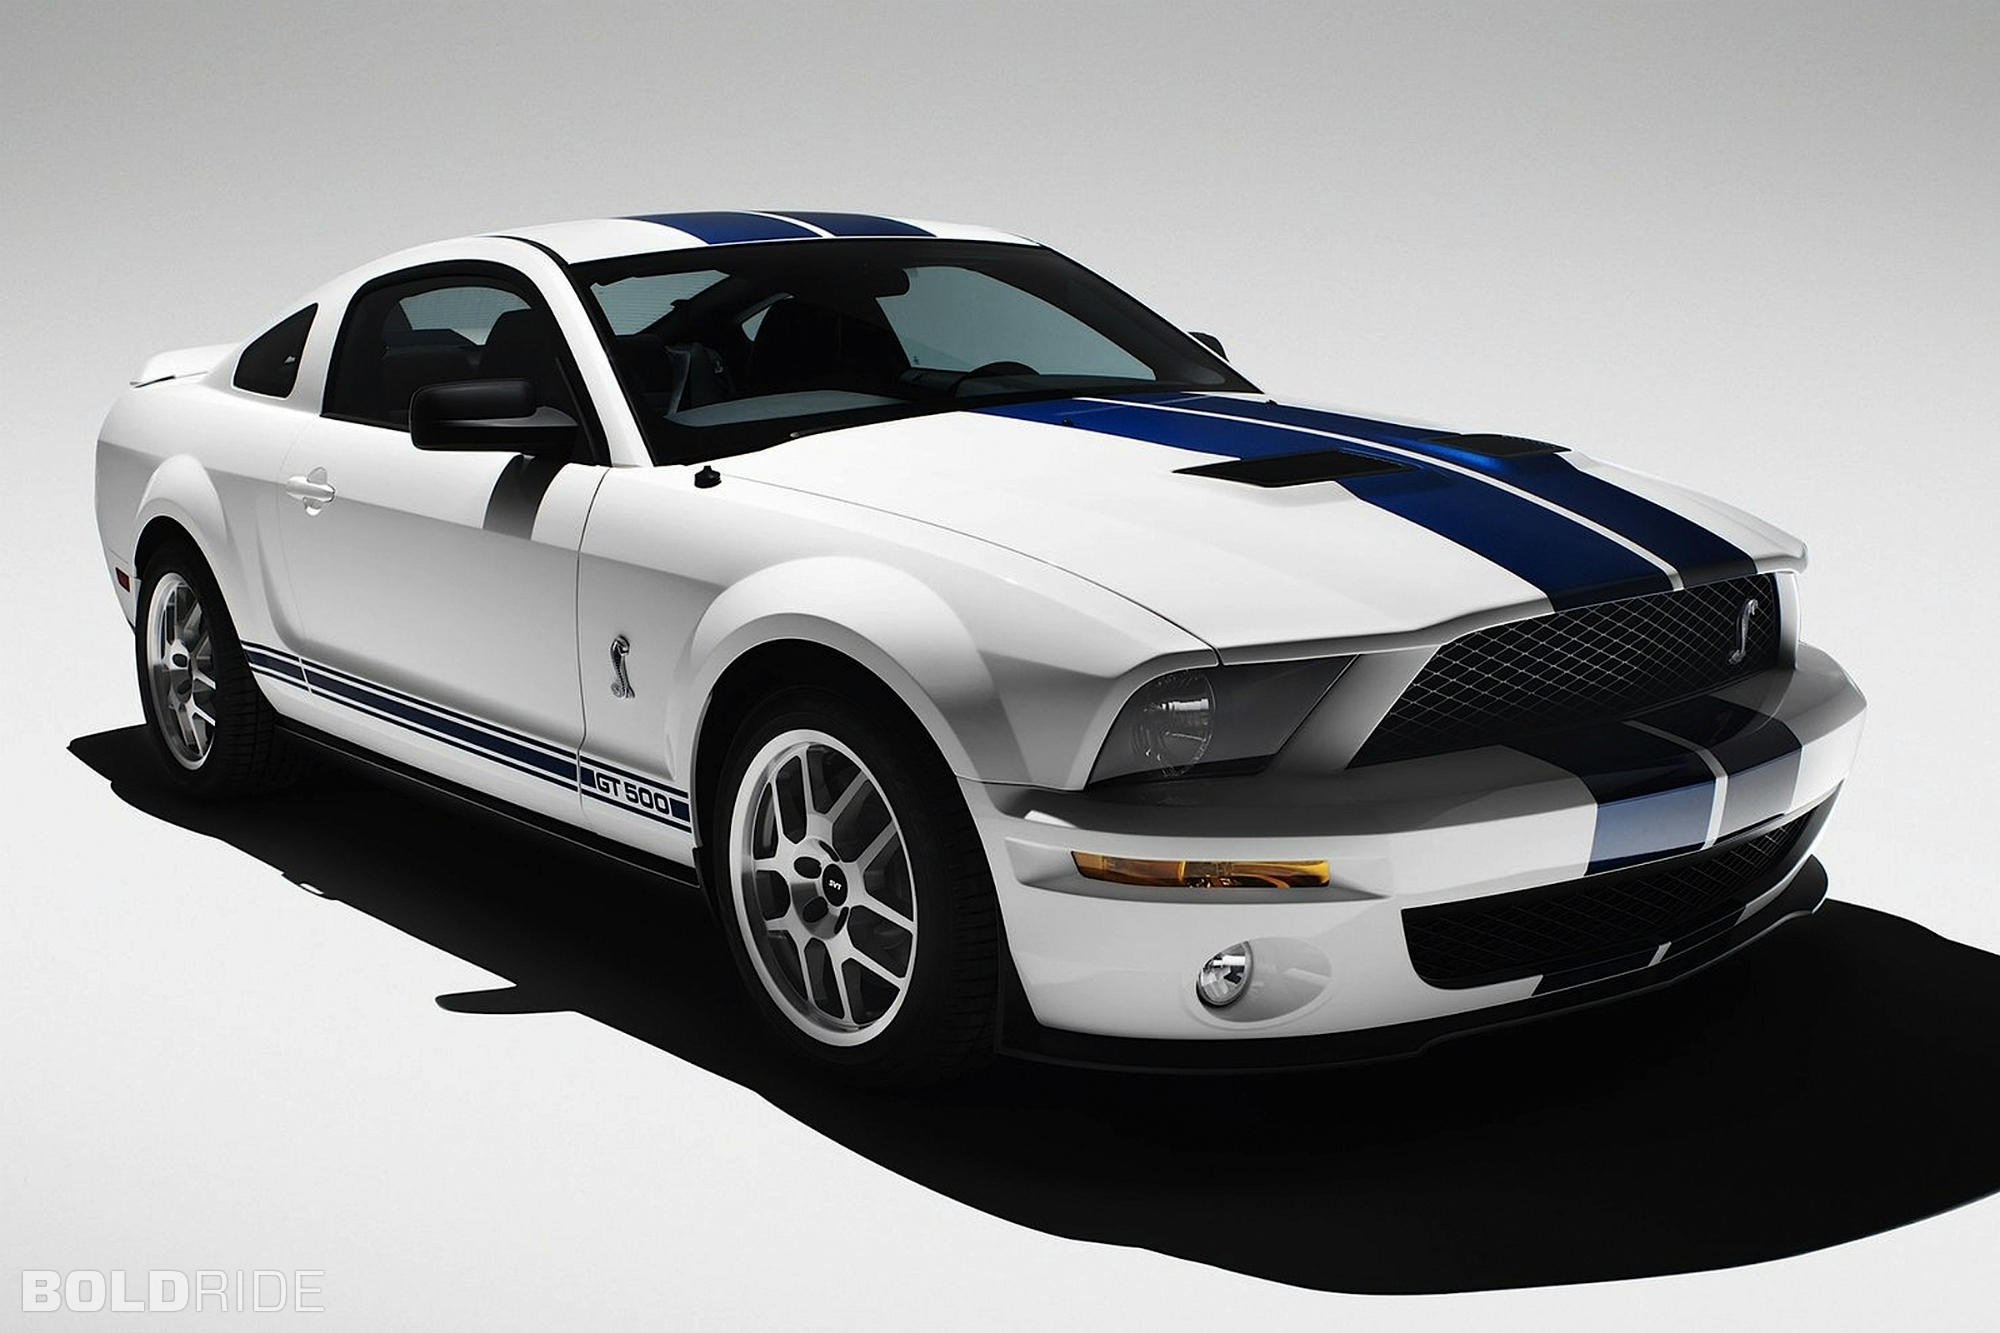 2008 Ford Shelby Gt500 Image 2